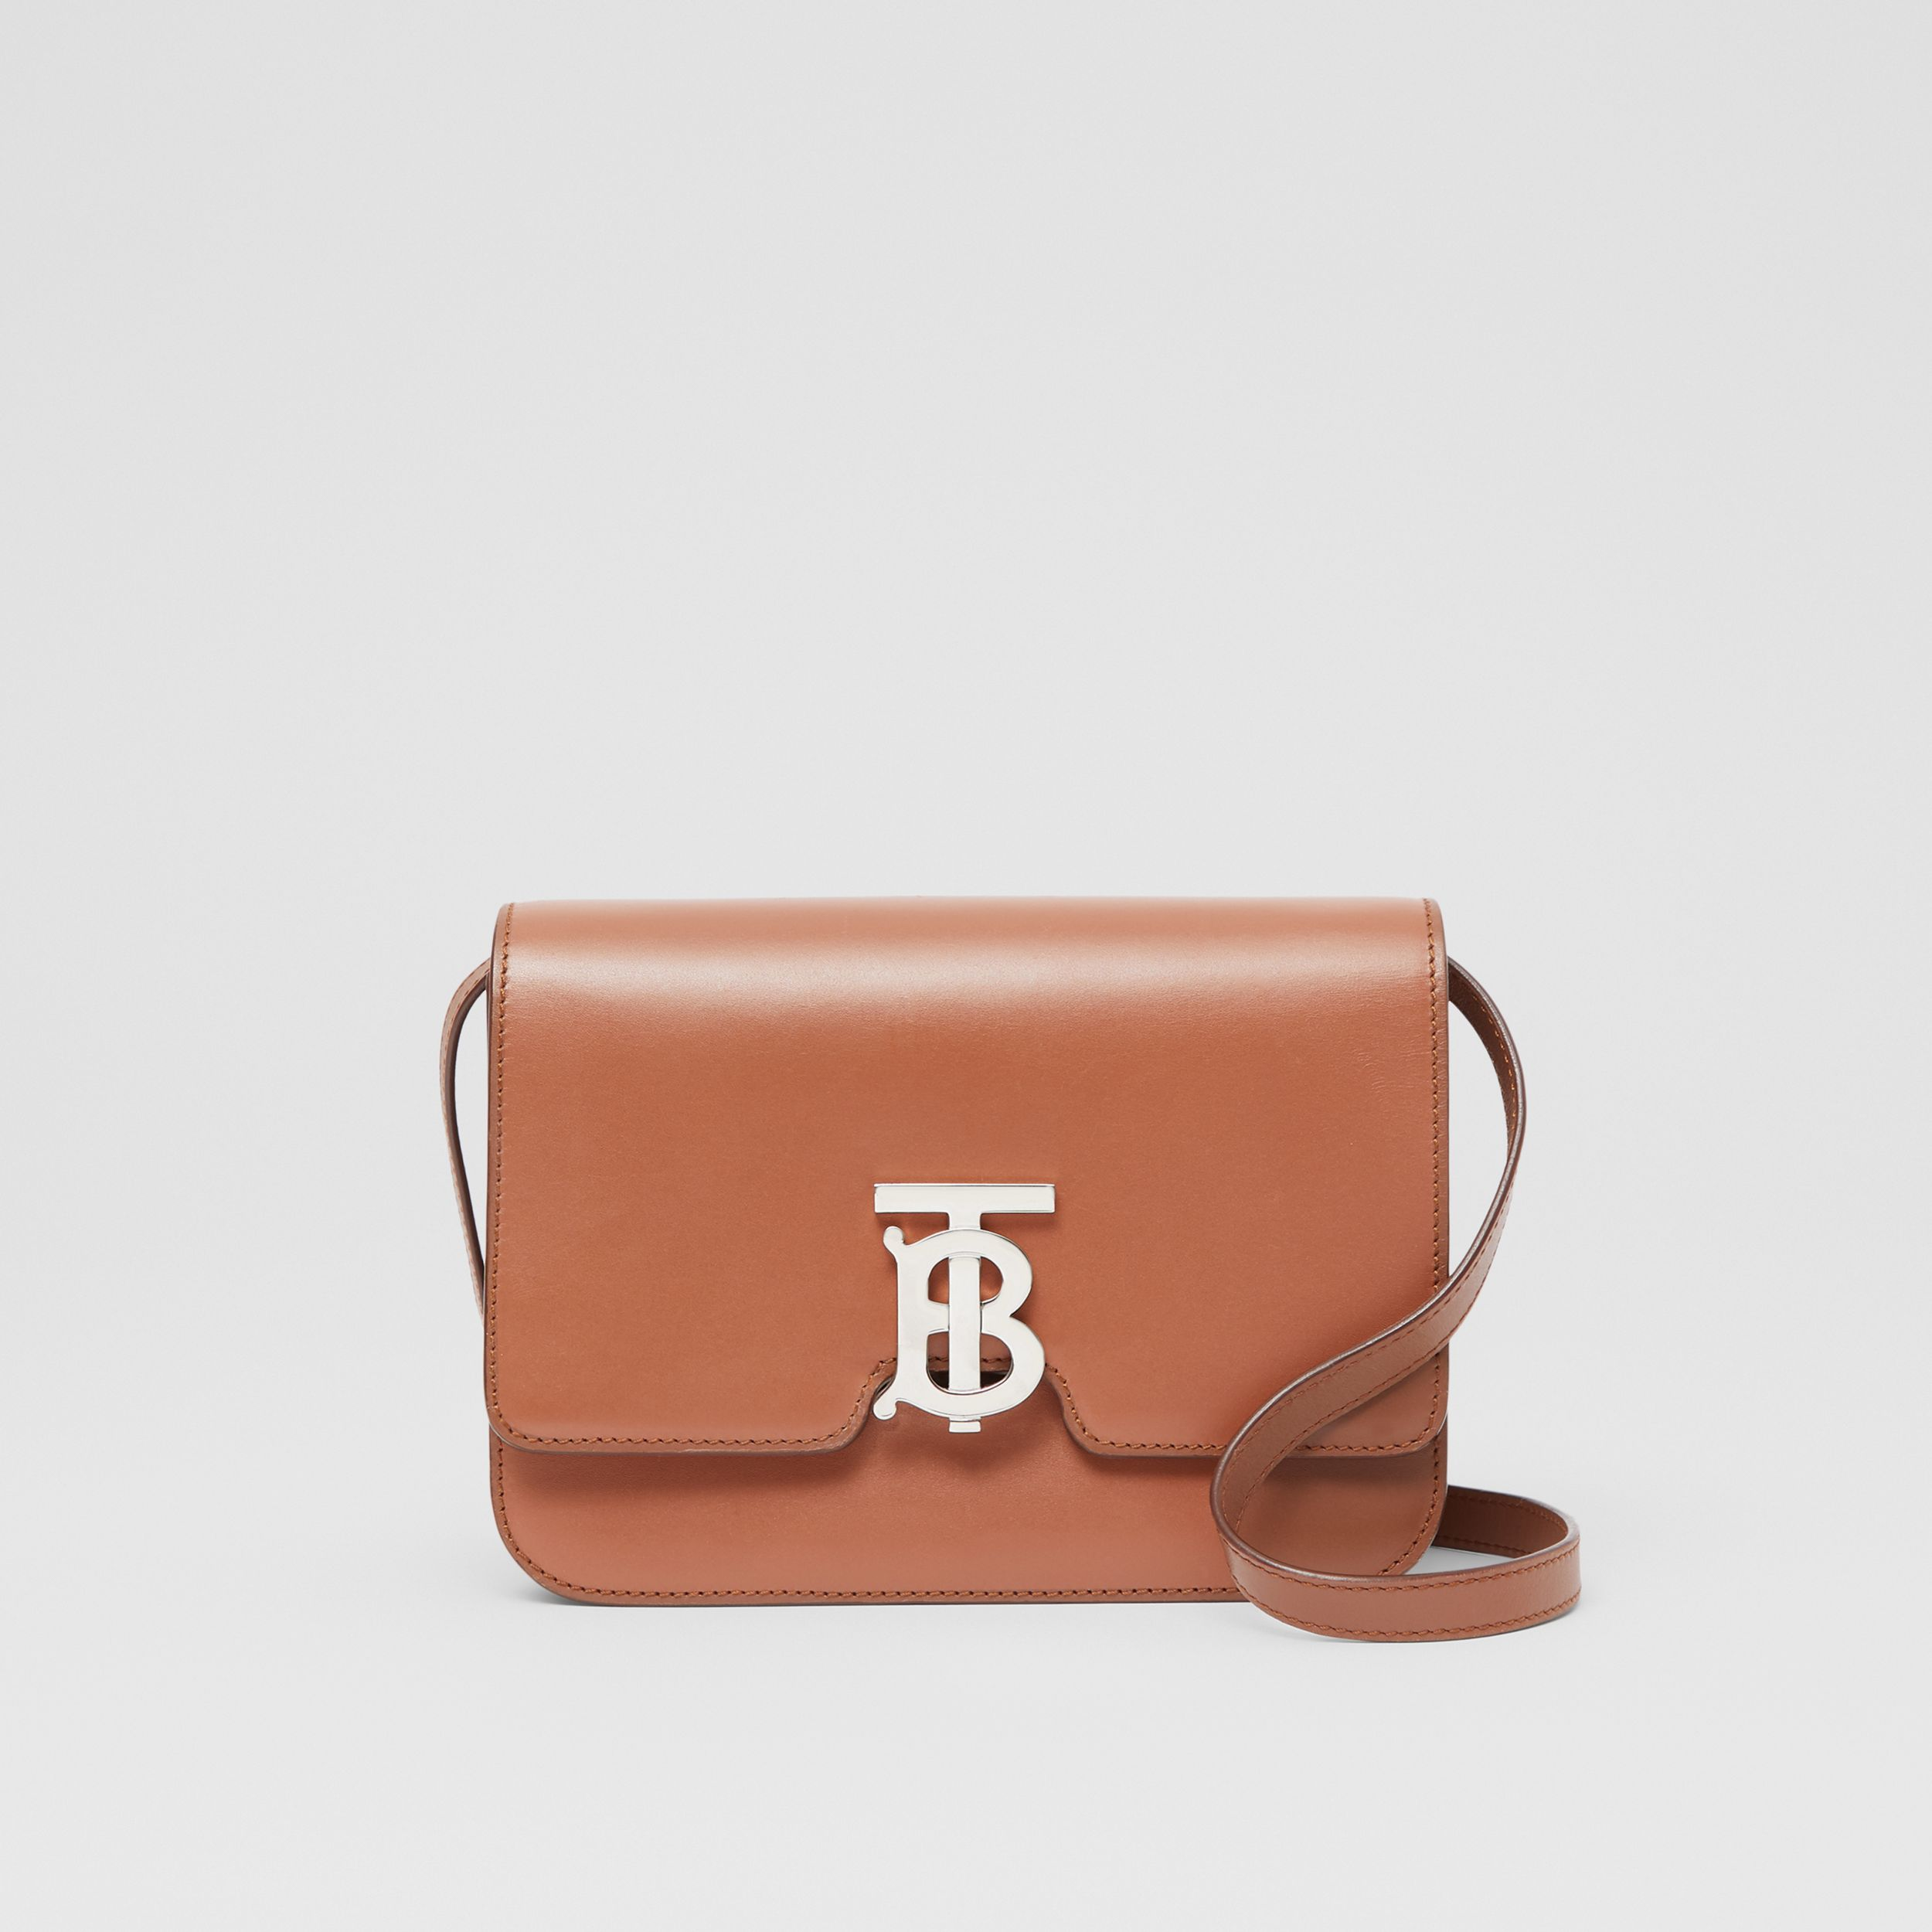 Small Leather TB Bag in Malt Brown - Women | Burberry - 1